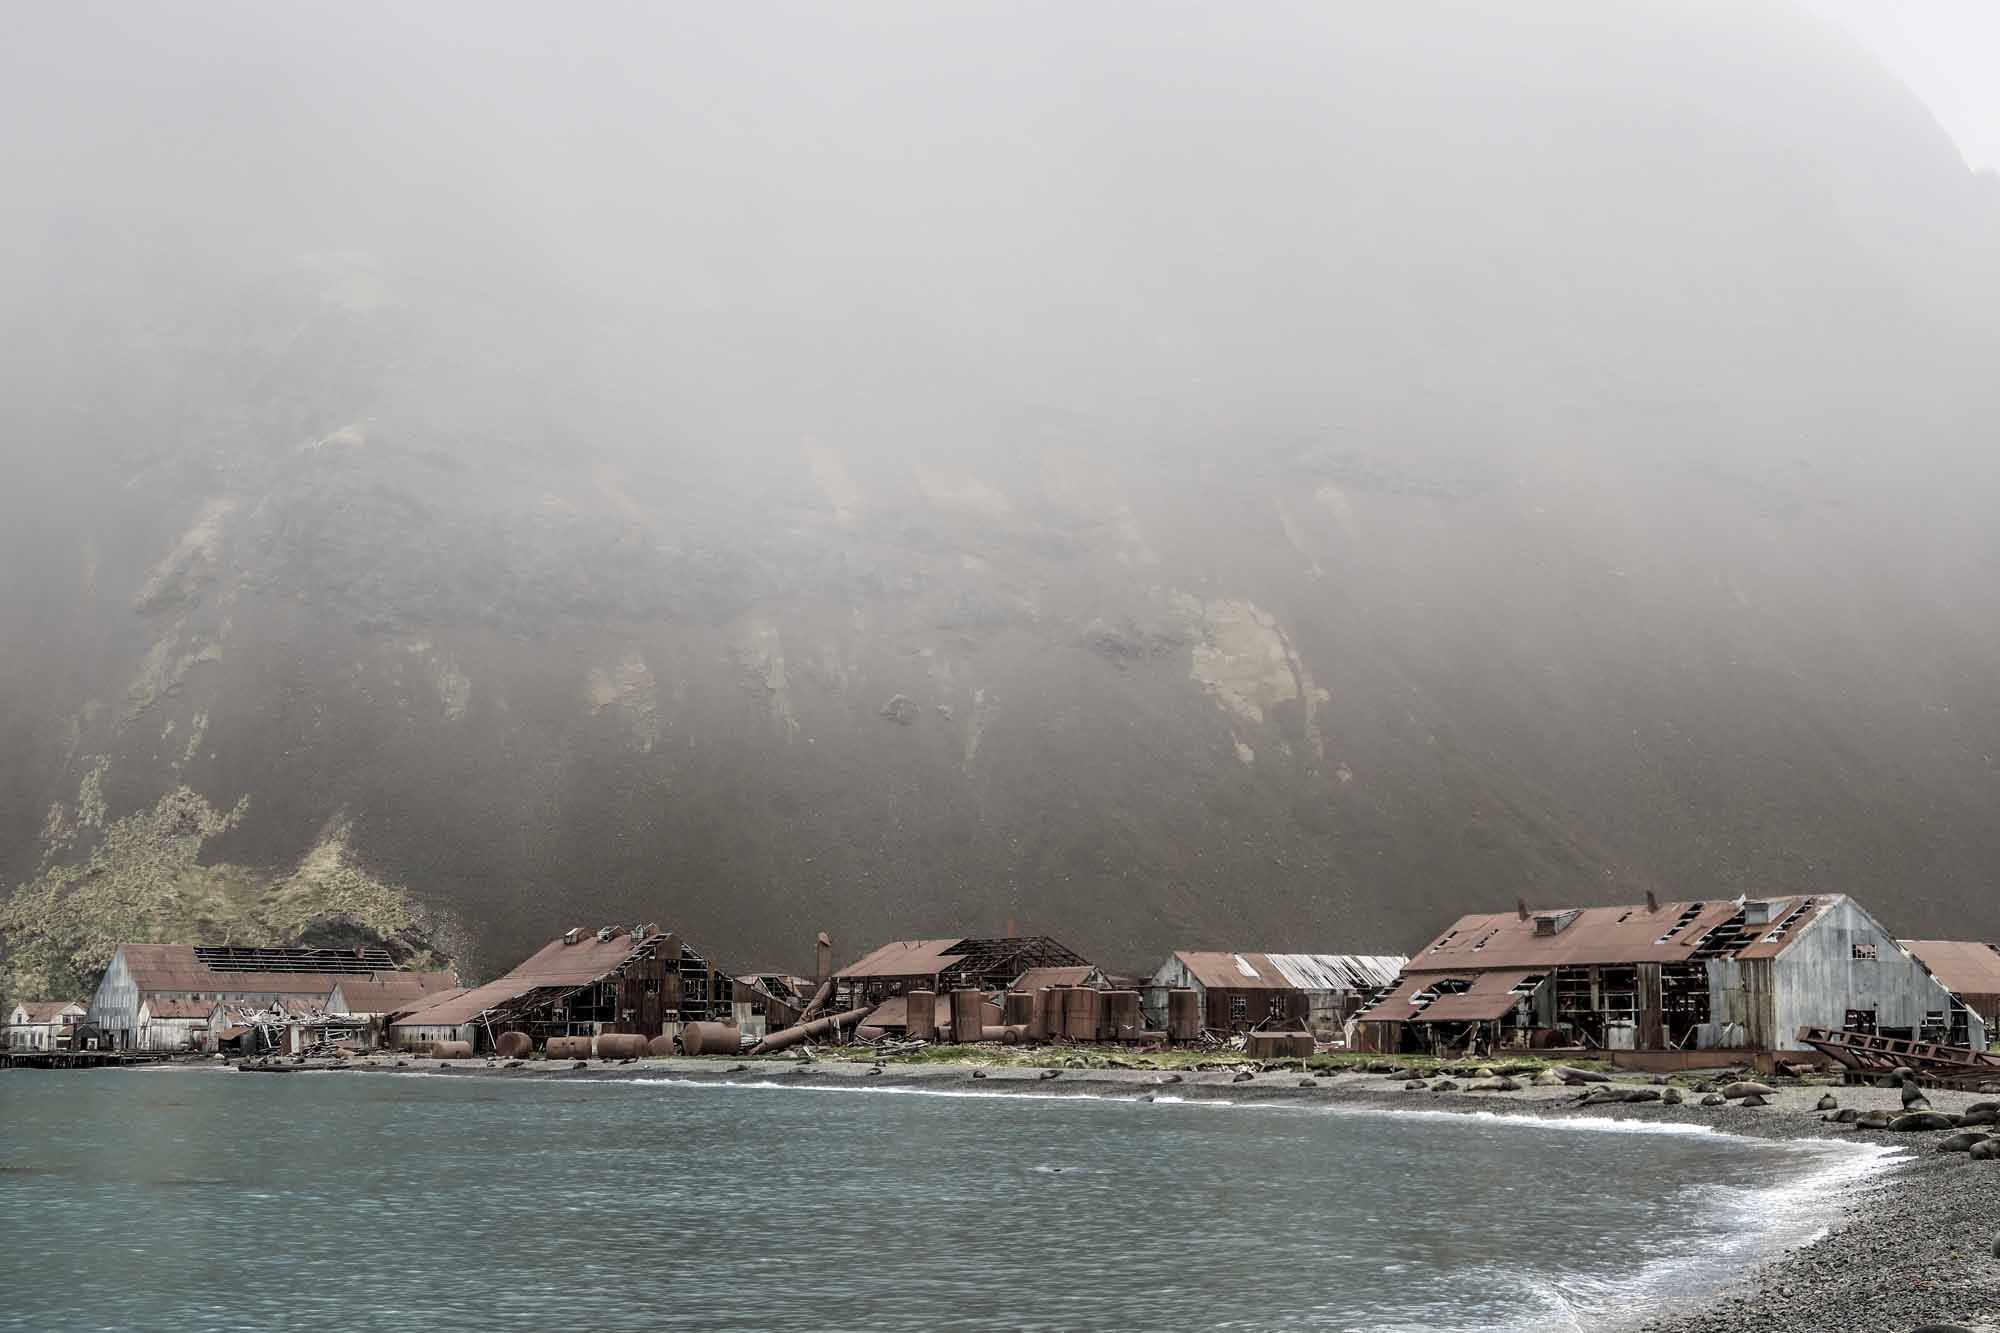 Island-of-Life-Restoring-and-Reclaiming-One-of-Earths-Most-Untamed-Places-photo-by-Ben-Haggar-abandoned-whaling-station